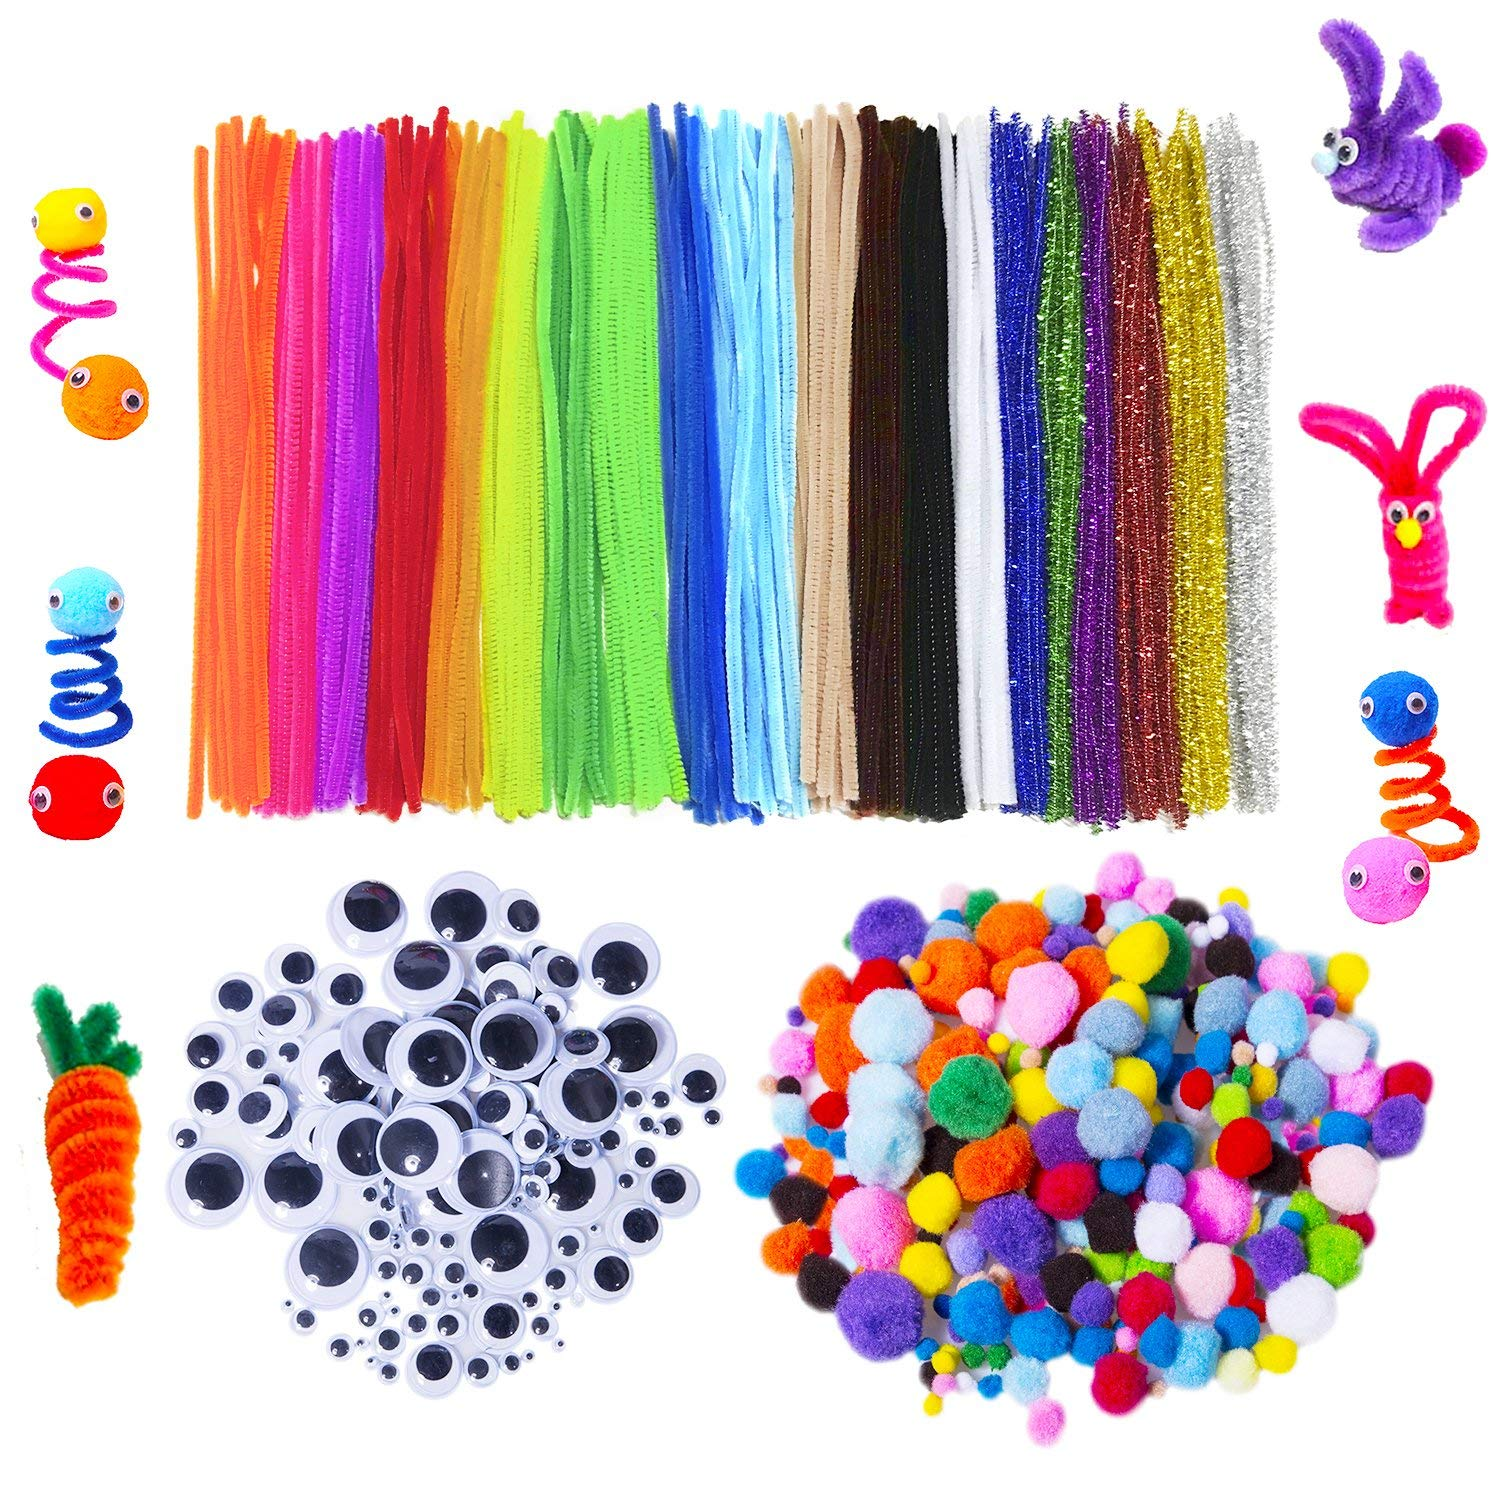 Assorted Pompoms for DIY Crafts and Decorations Pengxiaomei 200 Pcs 6 Sizes Pom Poms